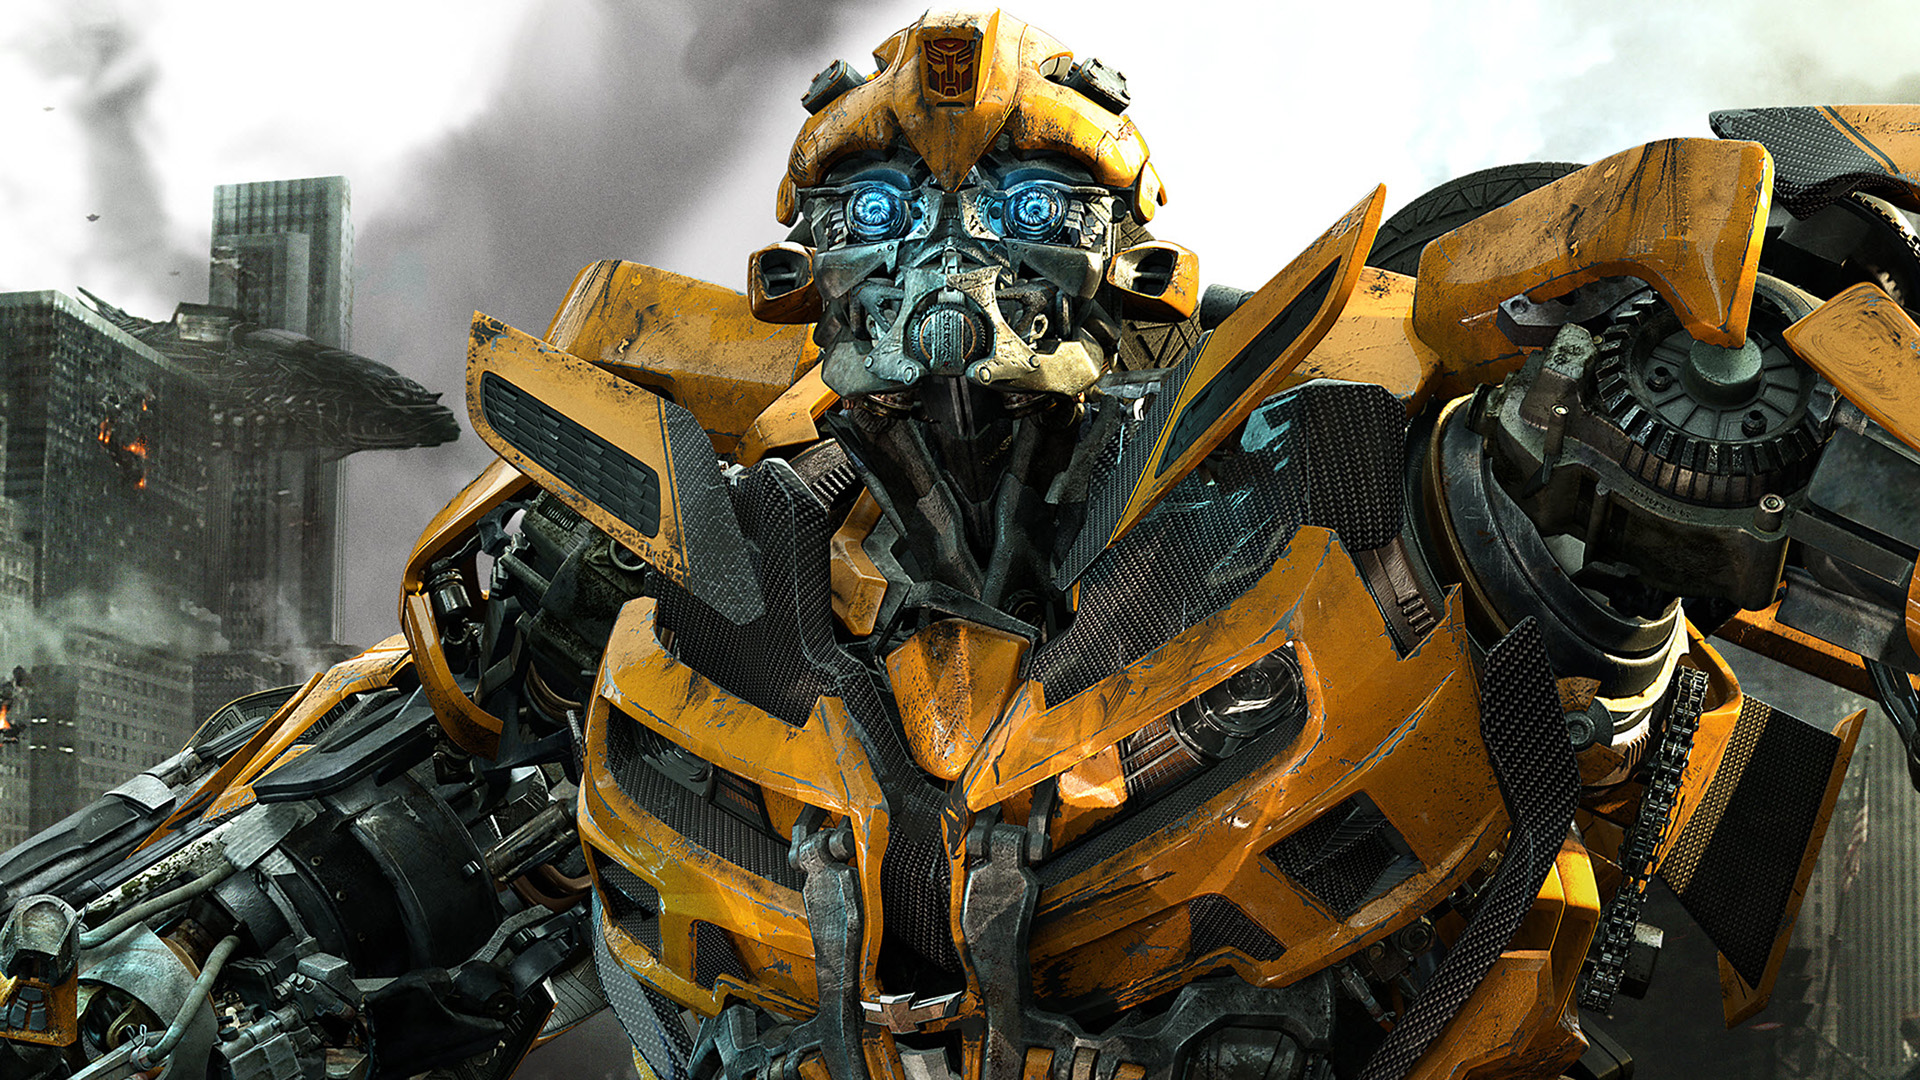 Transformers 3 Dark of the Moon Wallpapers 1920 x 1080